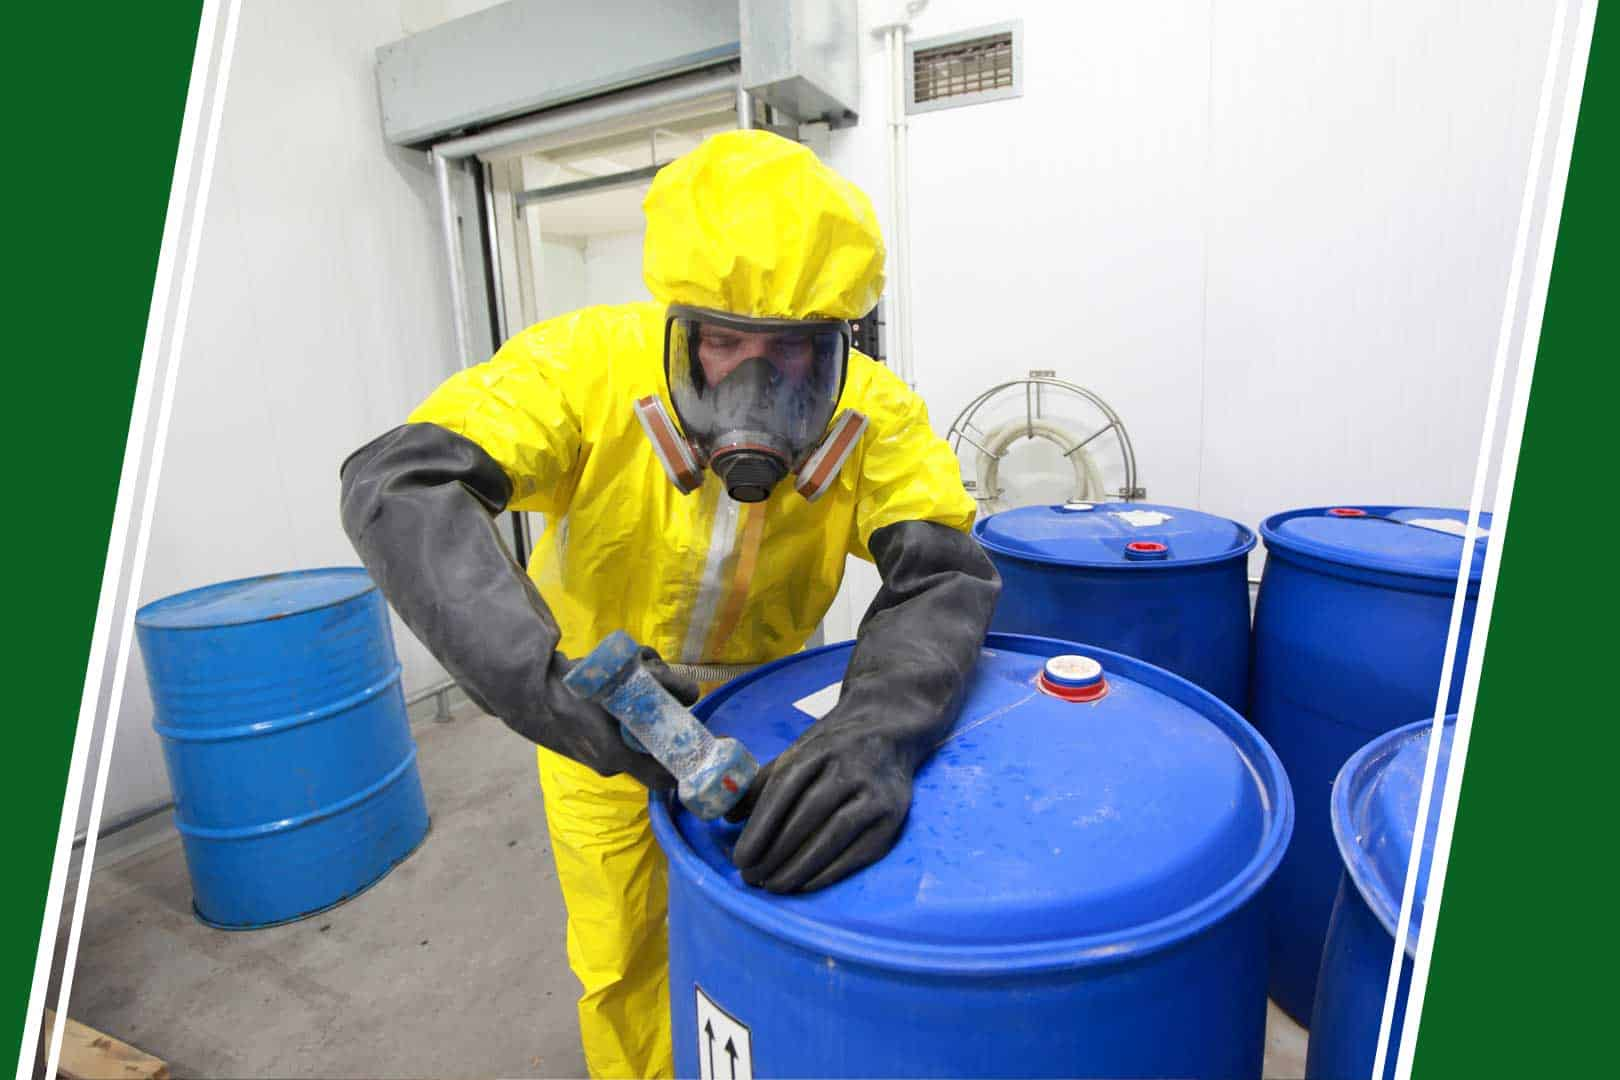 a man wearing a HAZMAT suit sealing a plastic barrel